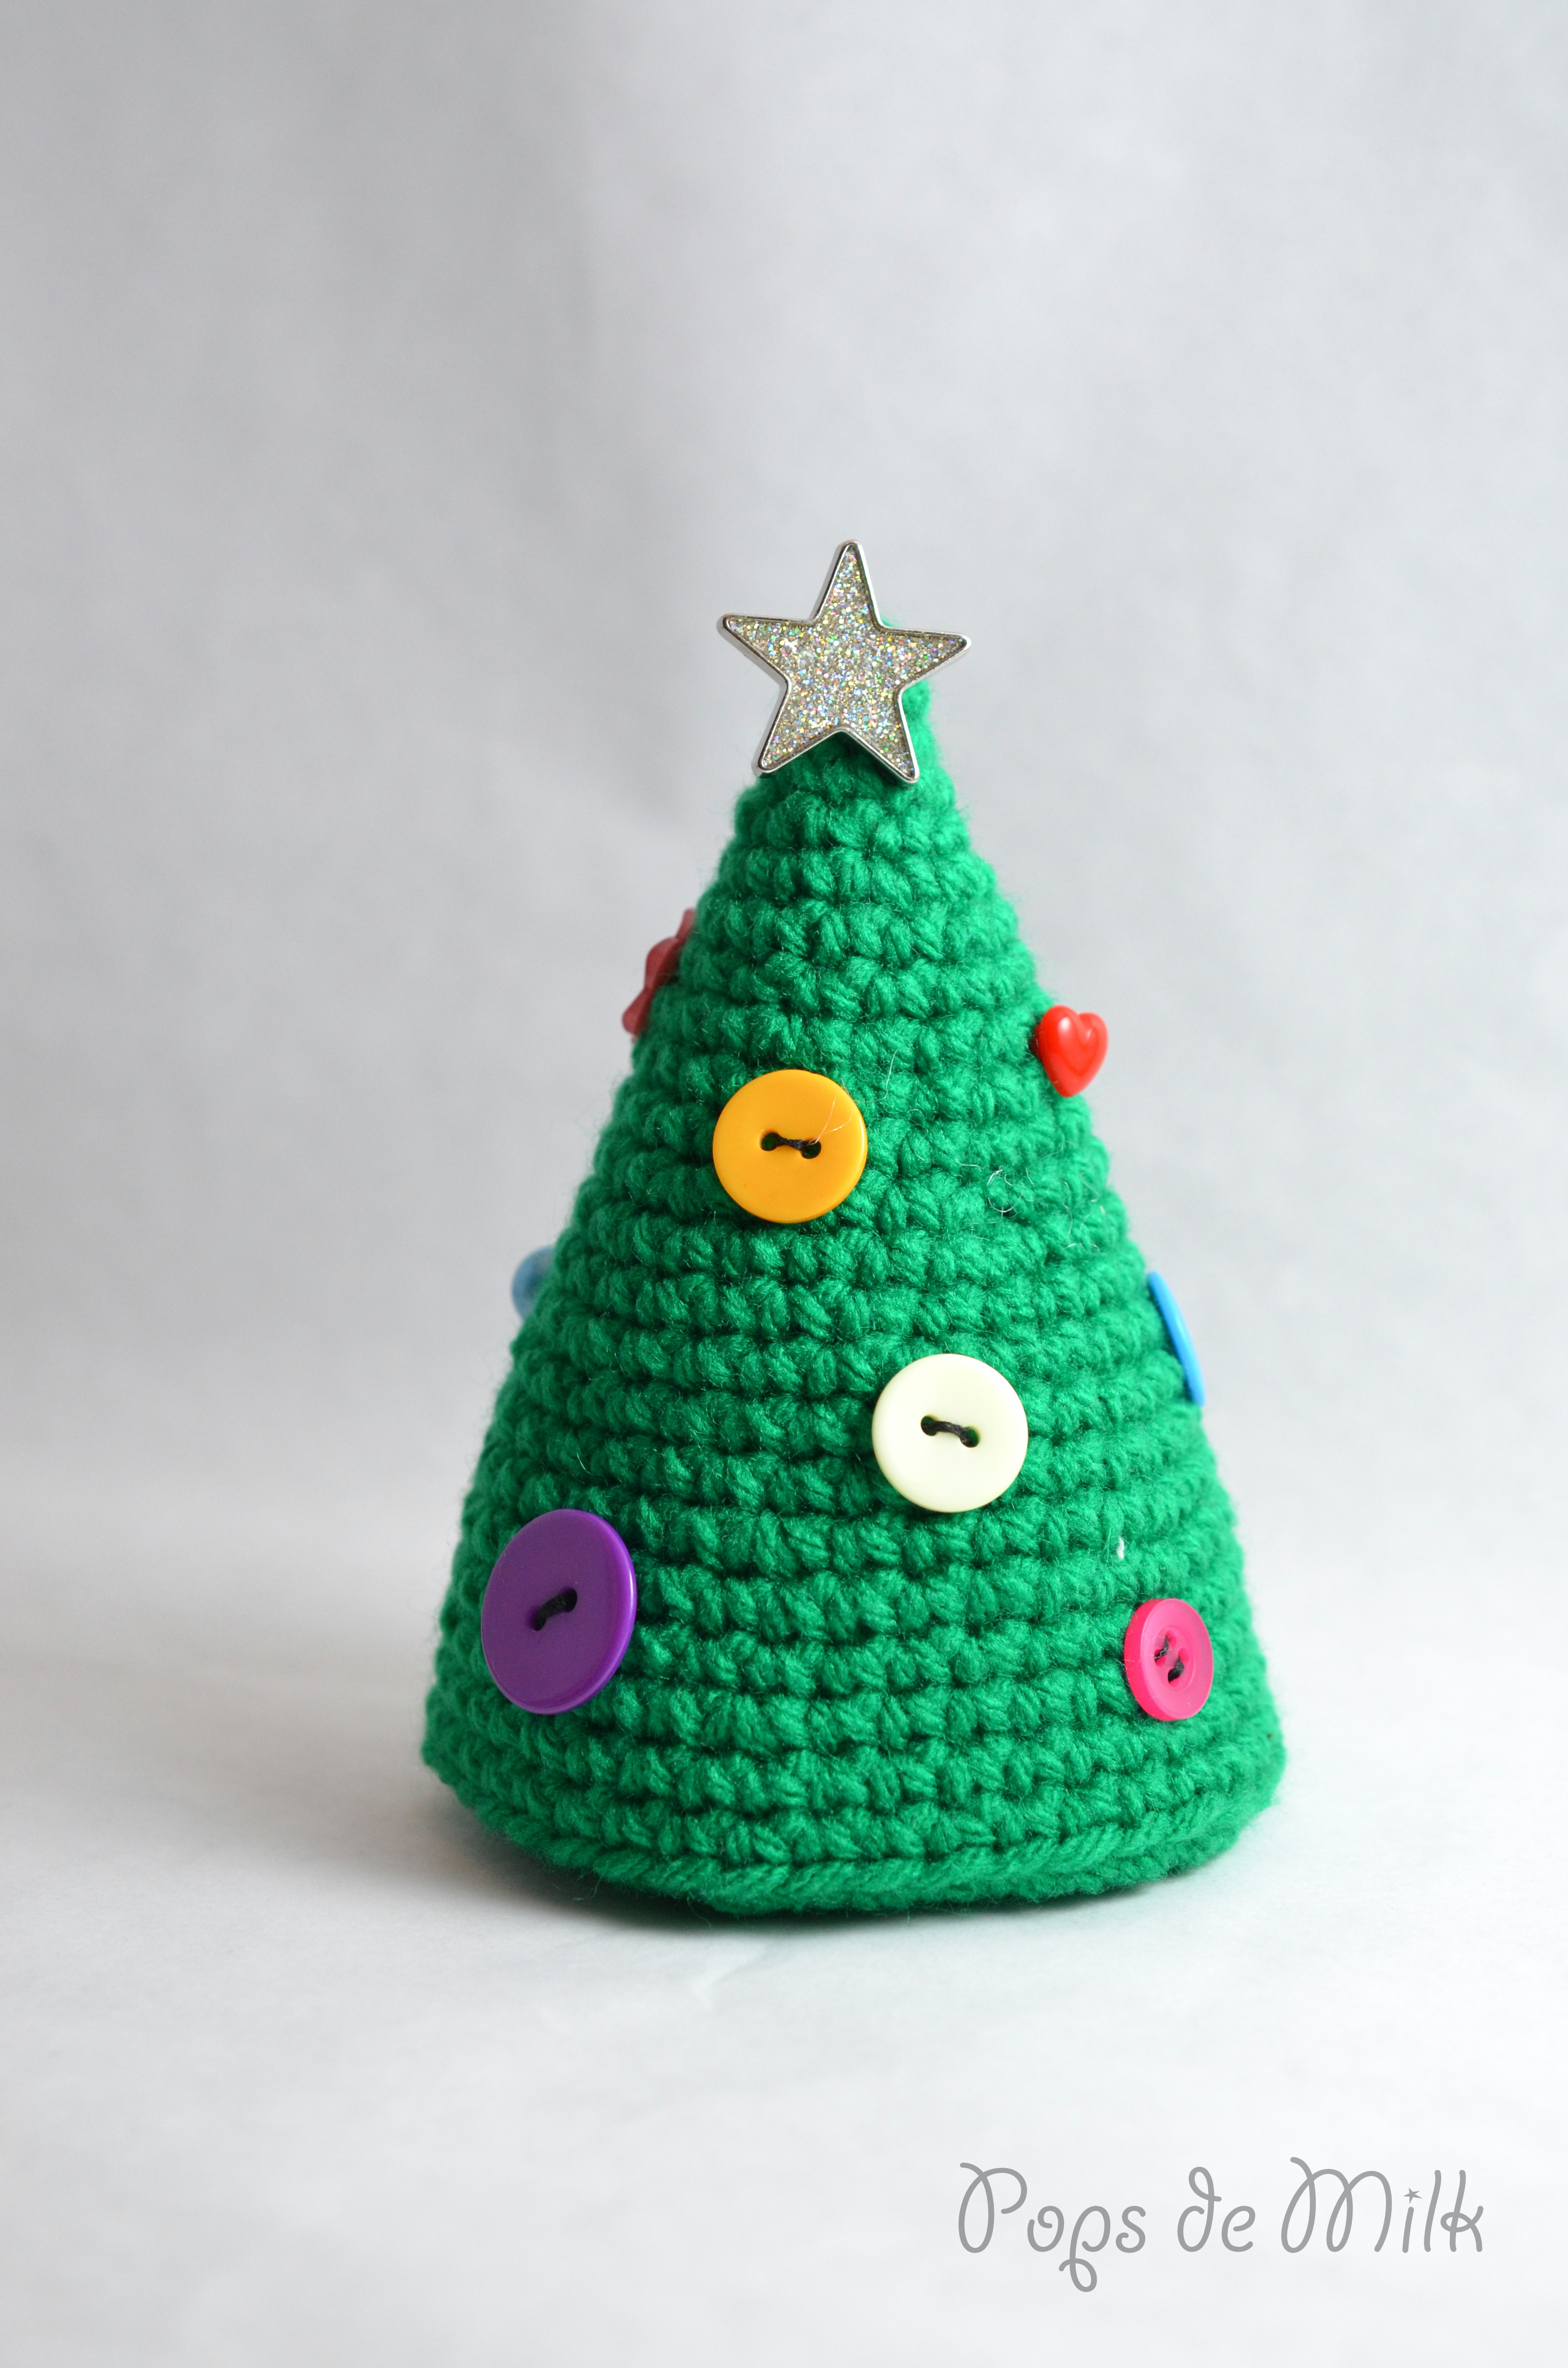 Fresh Crochet Christmas Tree with buttons Pops De Milk Crochet Christmas Trees Of Marvelous 46 Ideas Crochet Christmas Trees